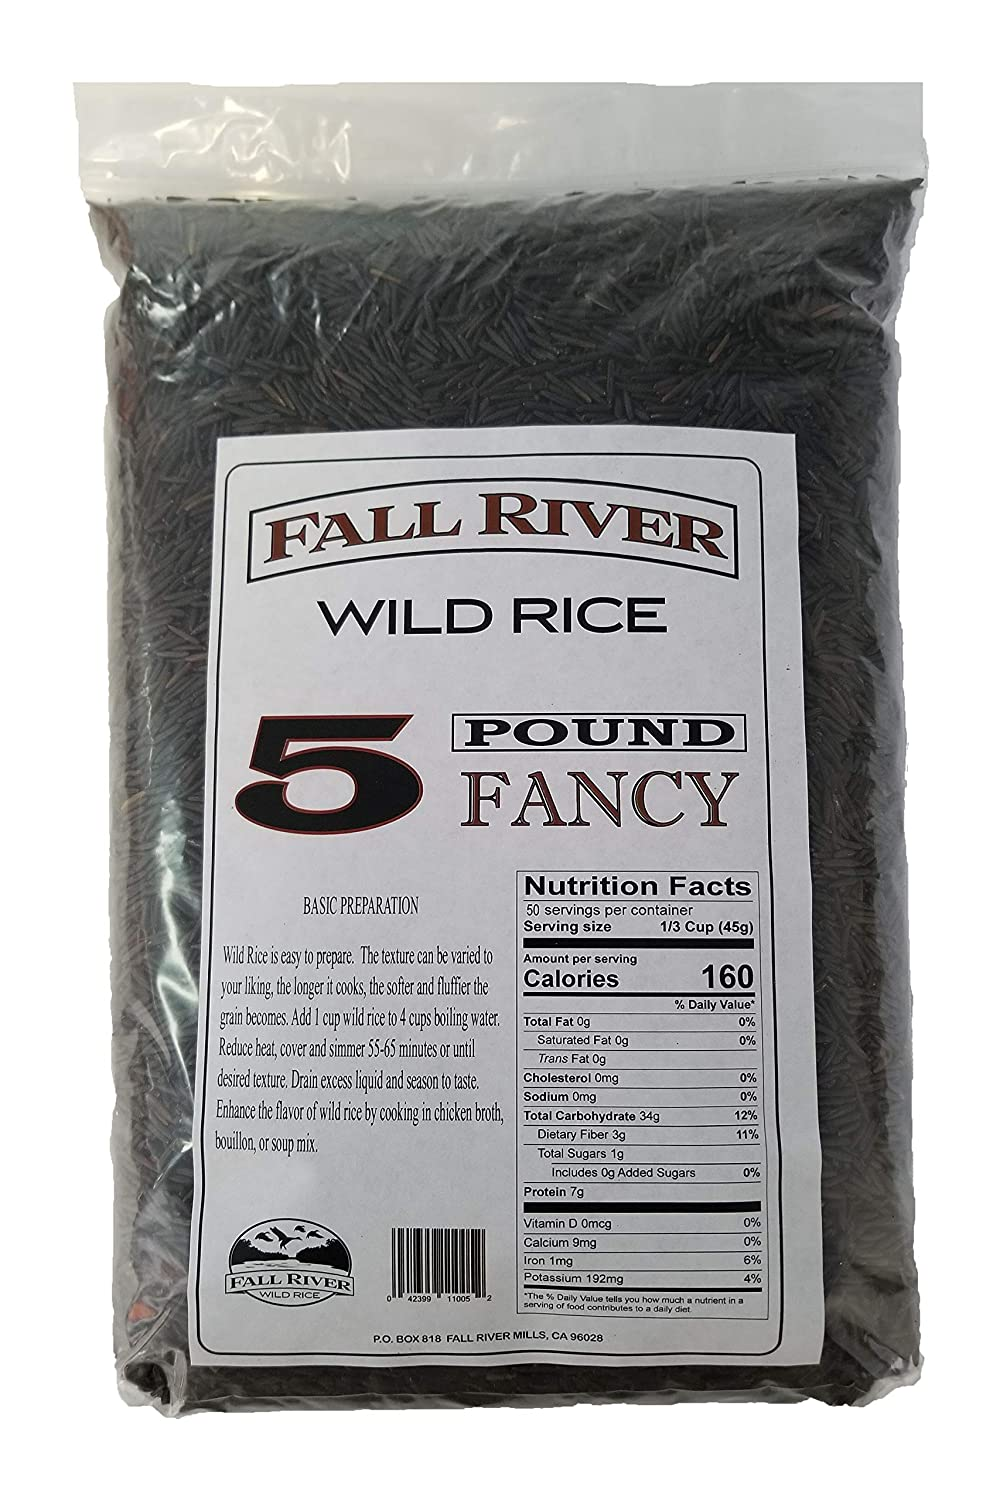 Fall River Wild Rice 6 Pounds - Fancy